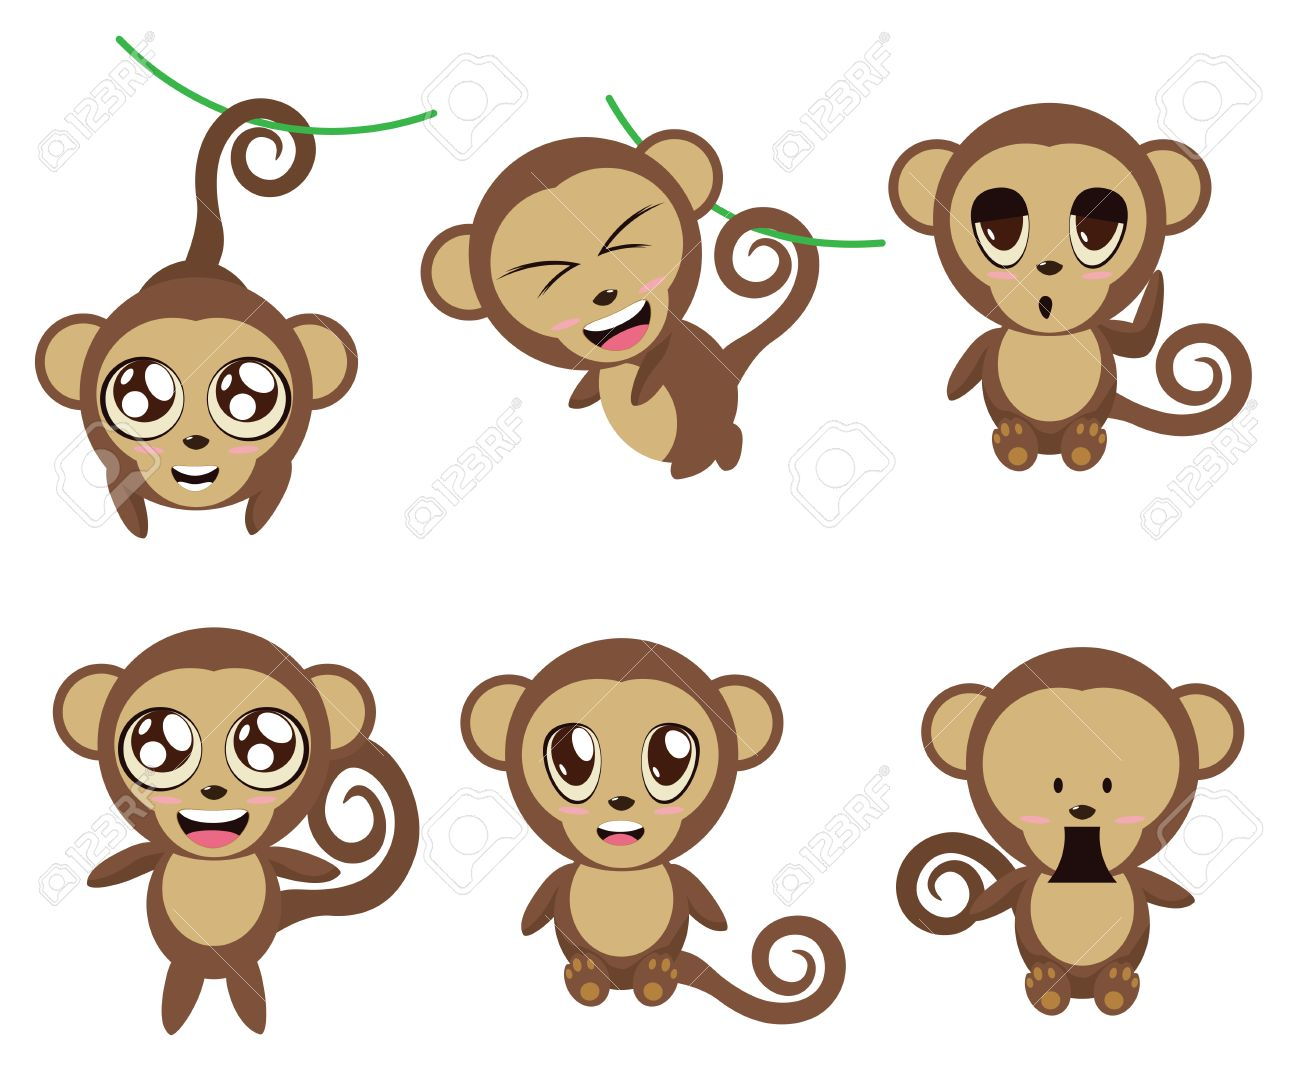 set of cartoon funny monkeys in different expressions and poses